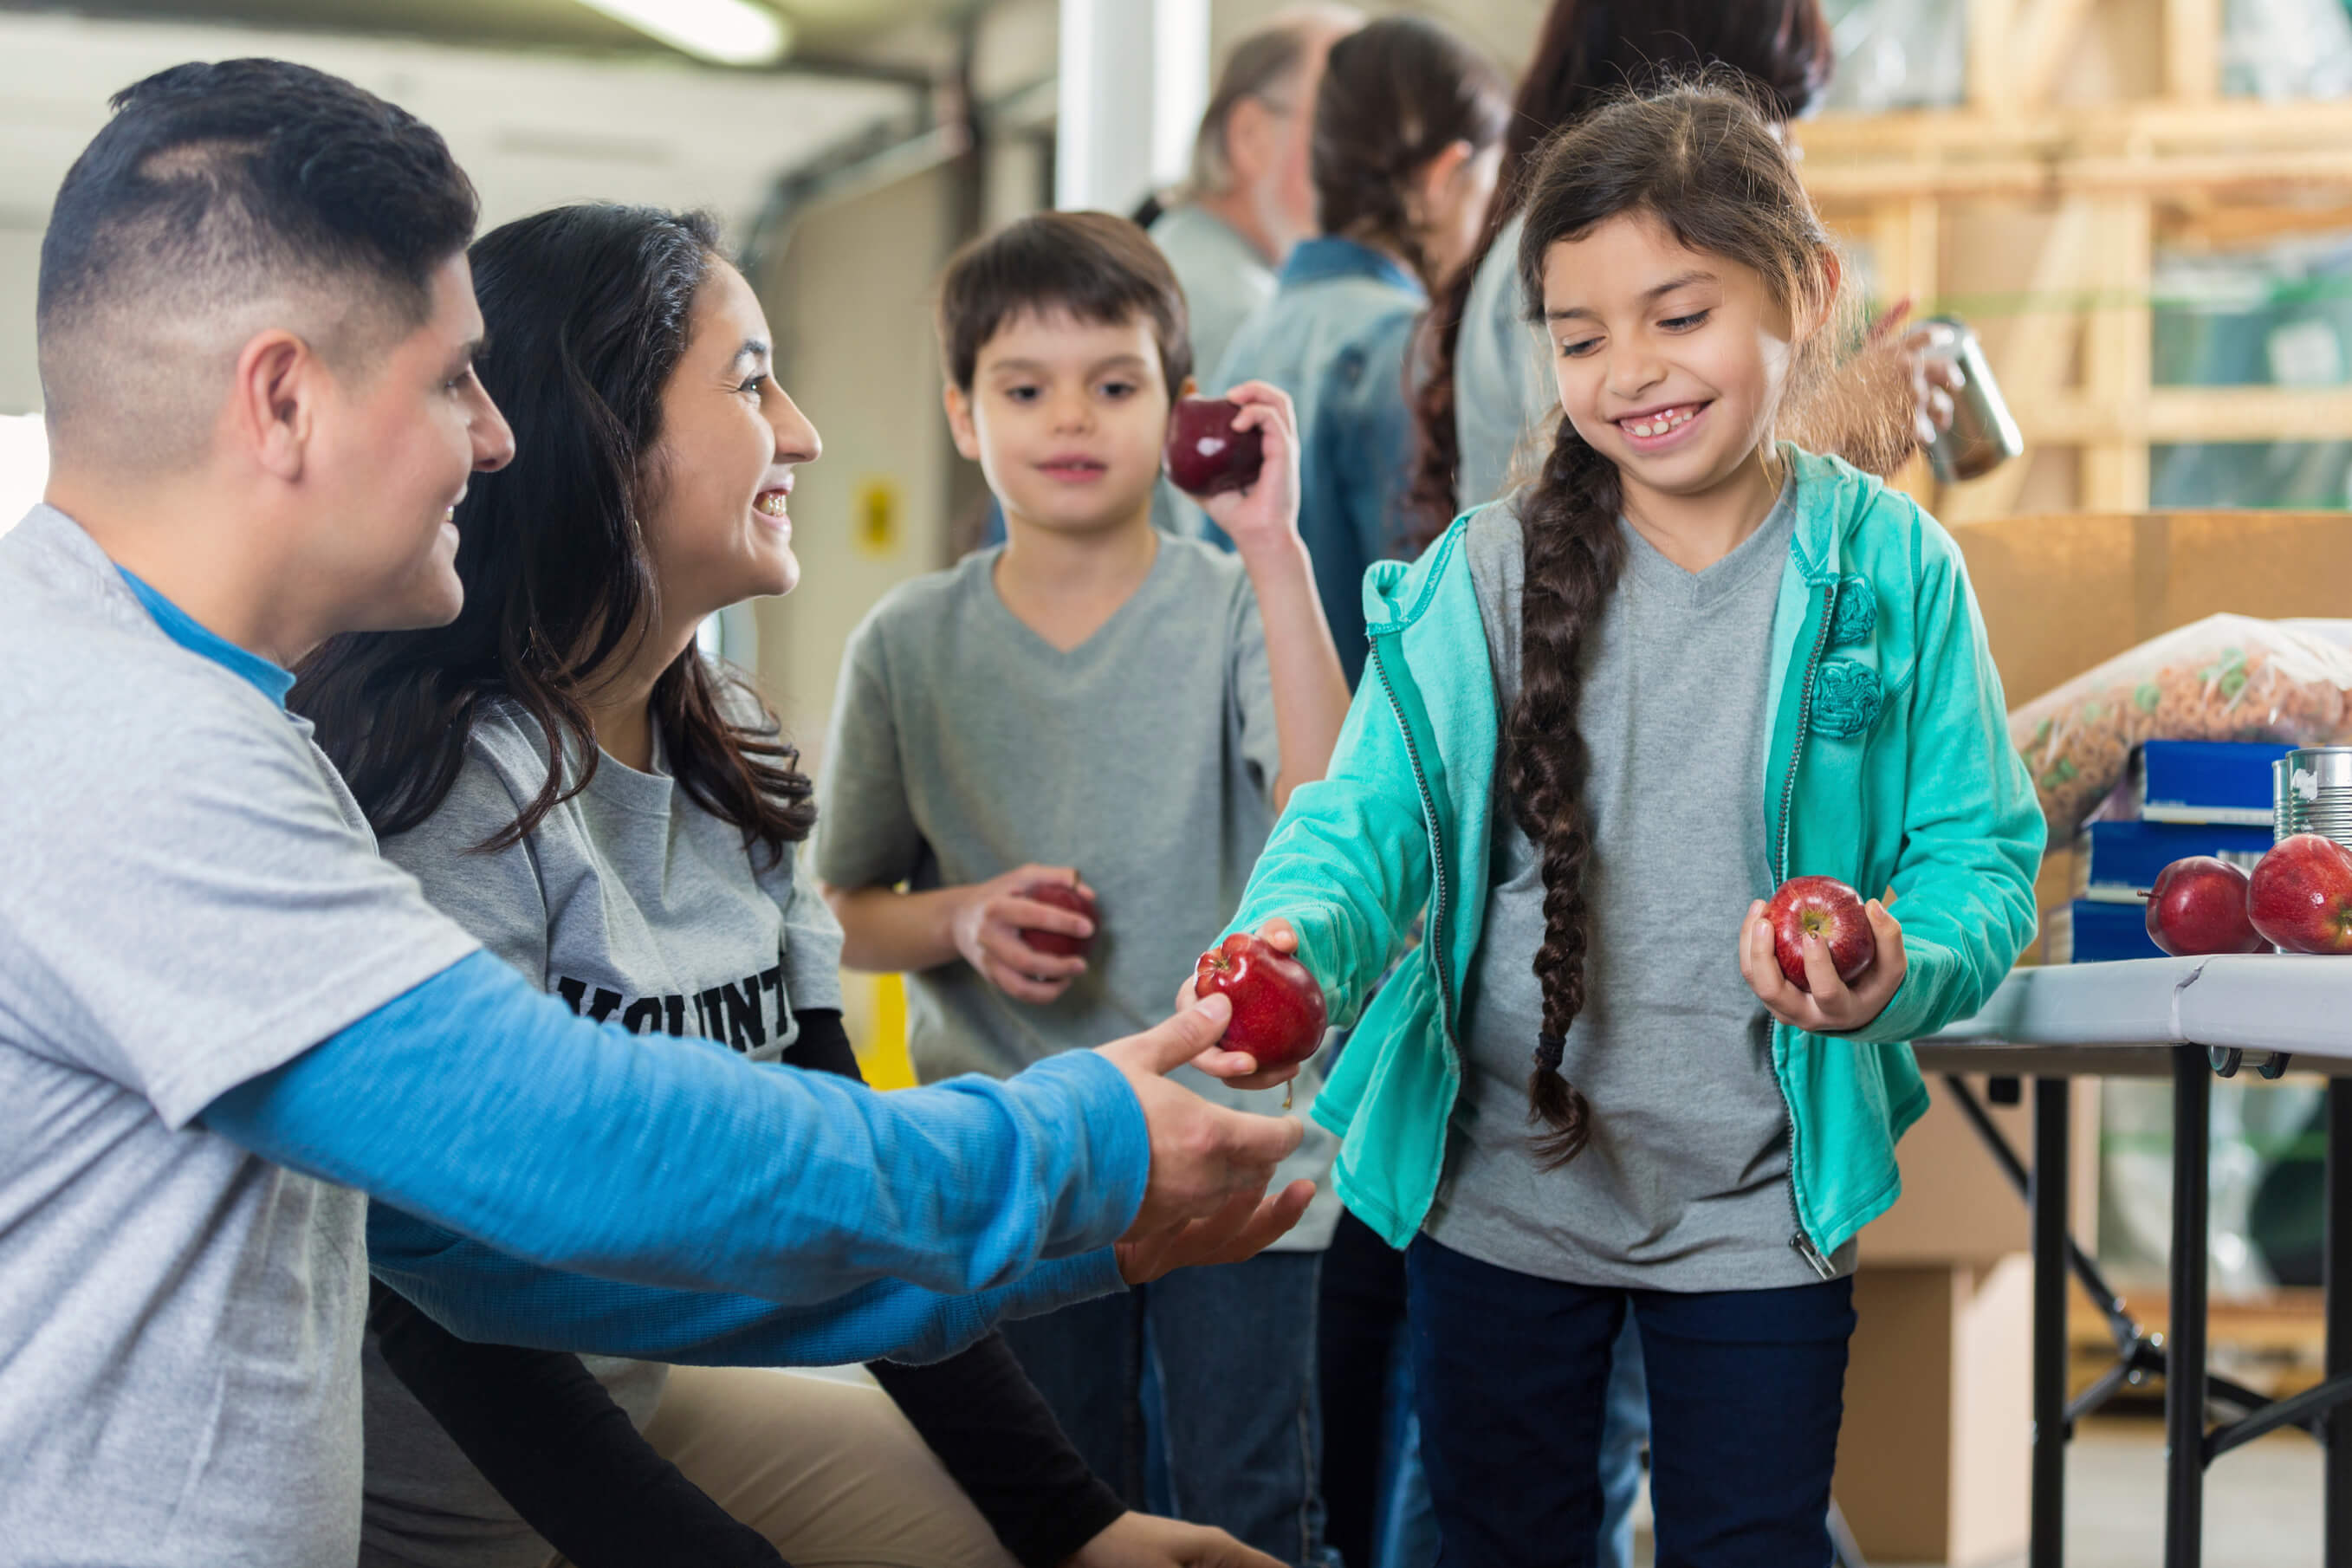 Mid adult Hispanic father and mother give their elementary age son and daughter apples in community food bank or soup kitchen. The children smile as they receive the apples. Volunteers are working in the background.